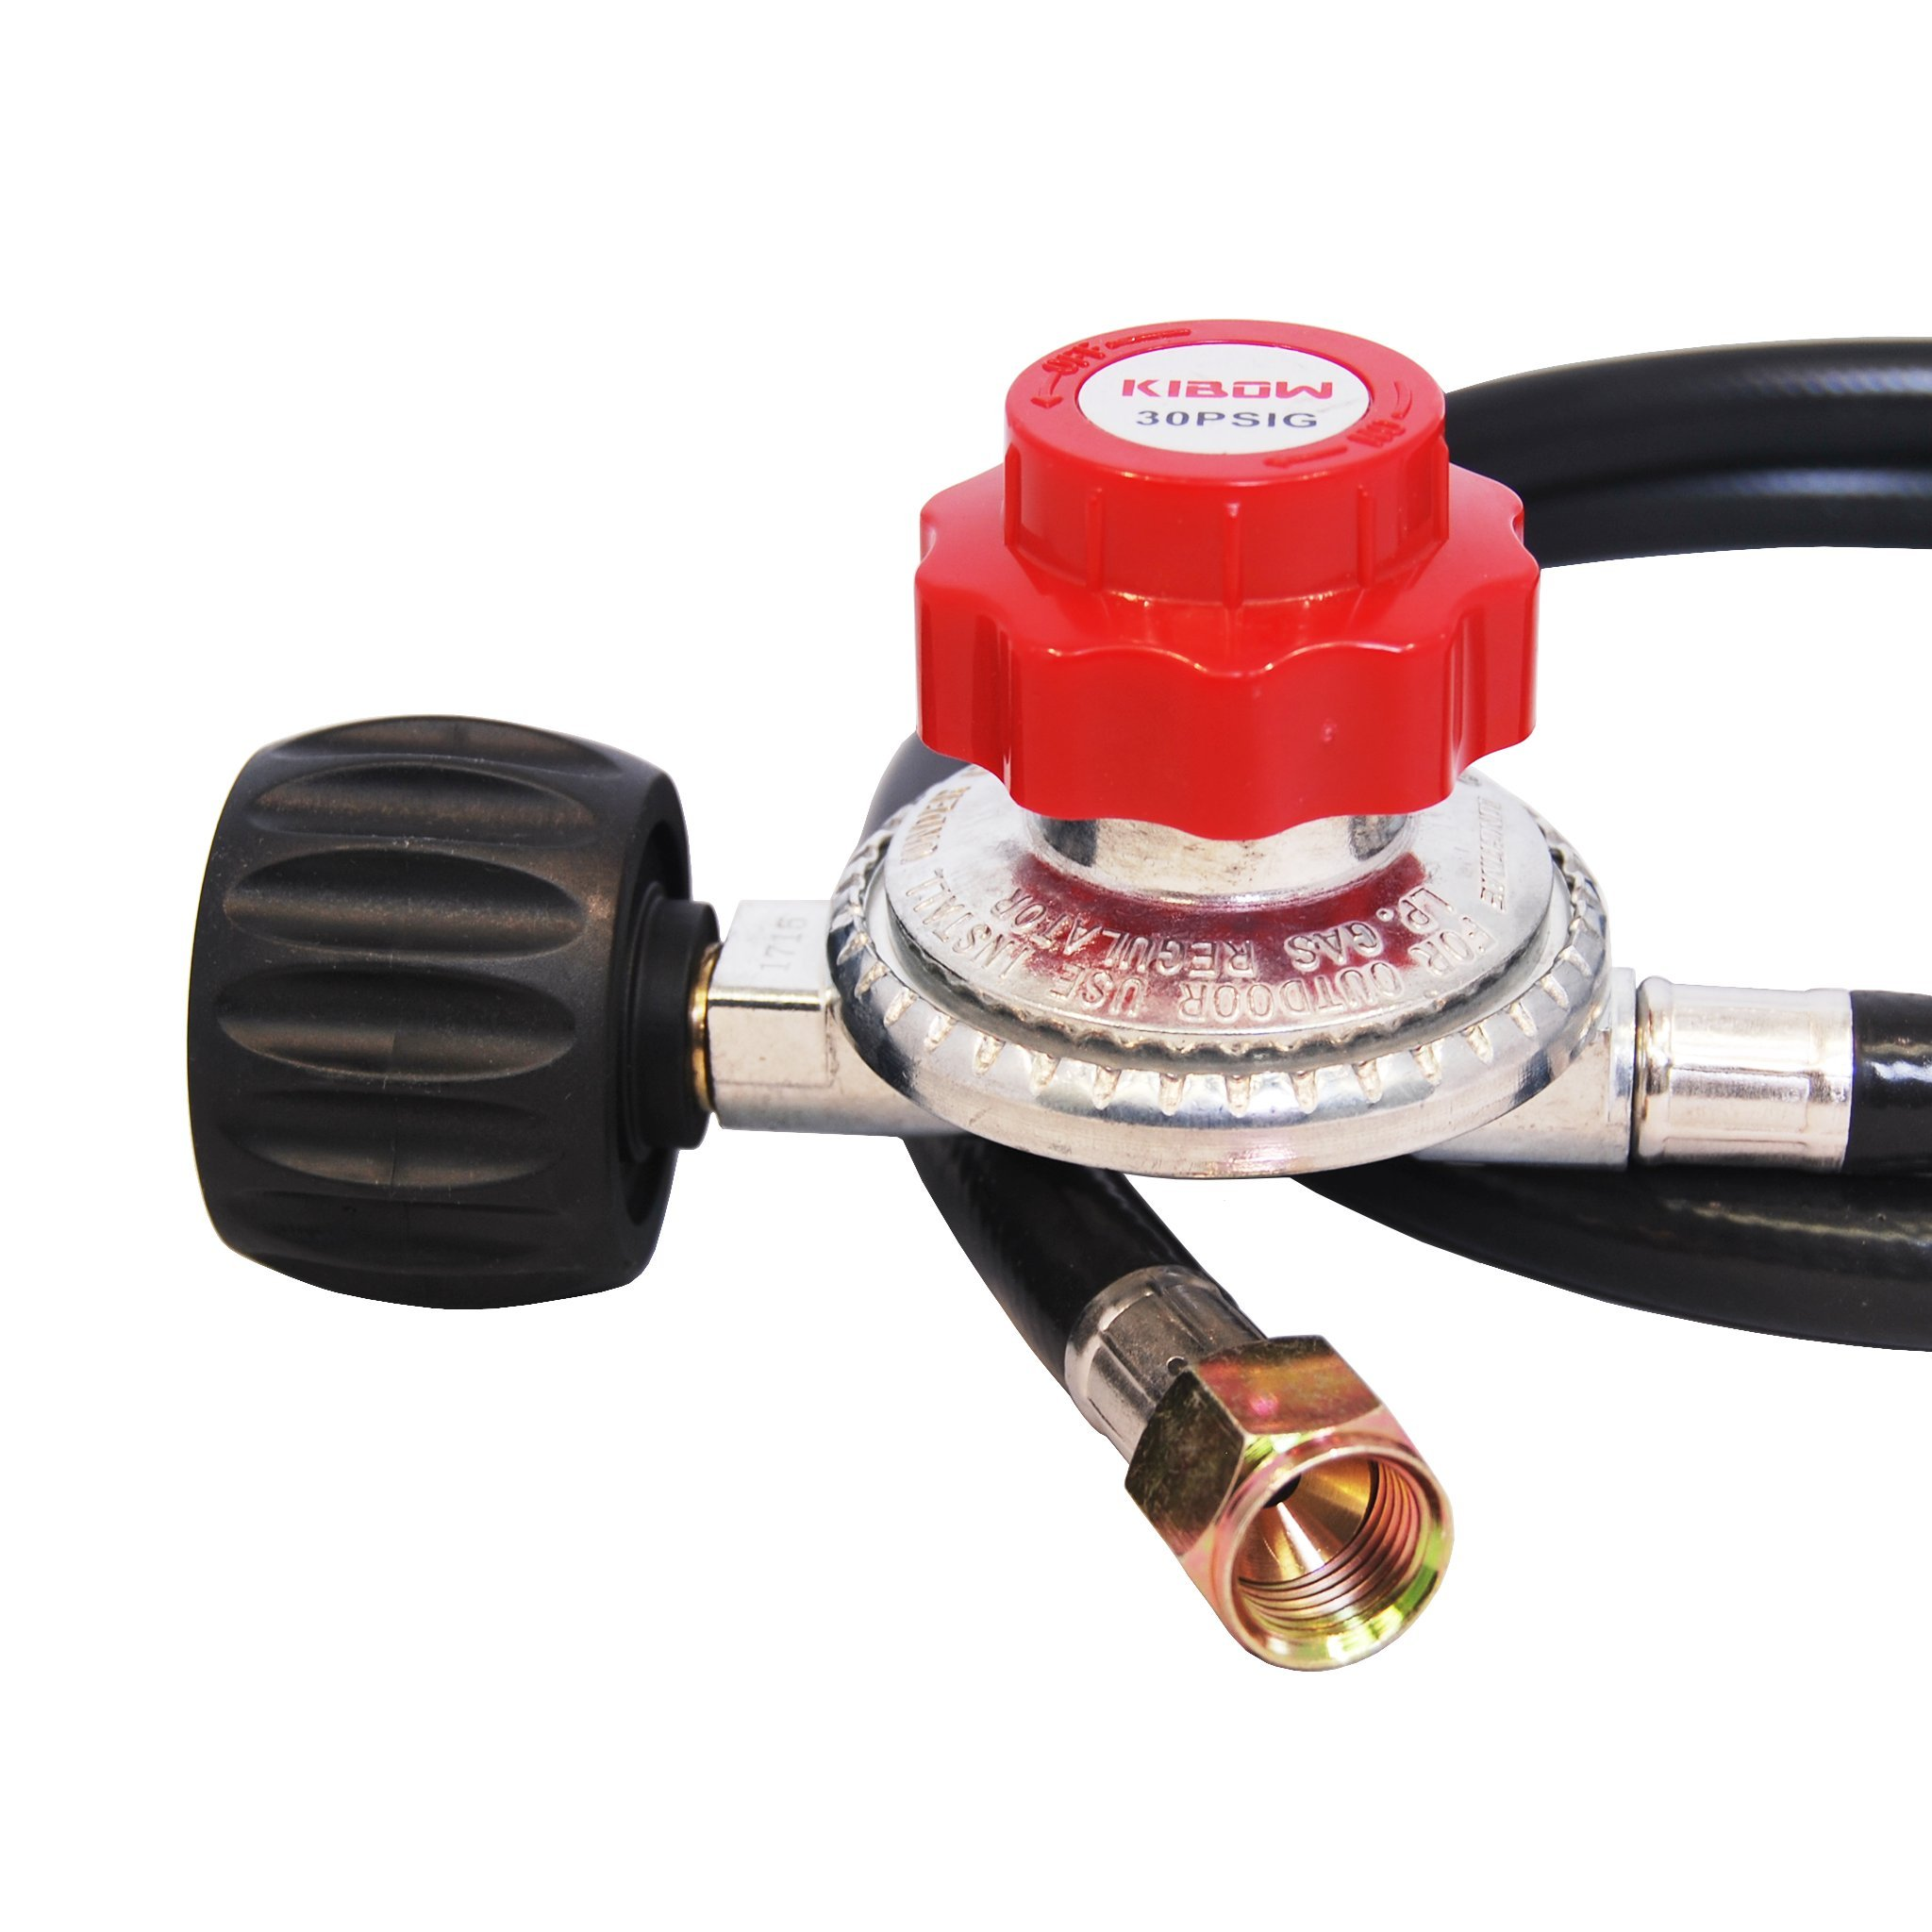 KIBOW 0~30PSI High Pressure Adjustable Propane Regulator with 4FT Hose-Type 1(QCC 1) Connection-CSA Certified by KIBOW (Image #3)